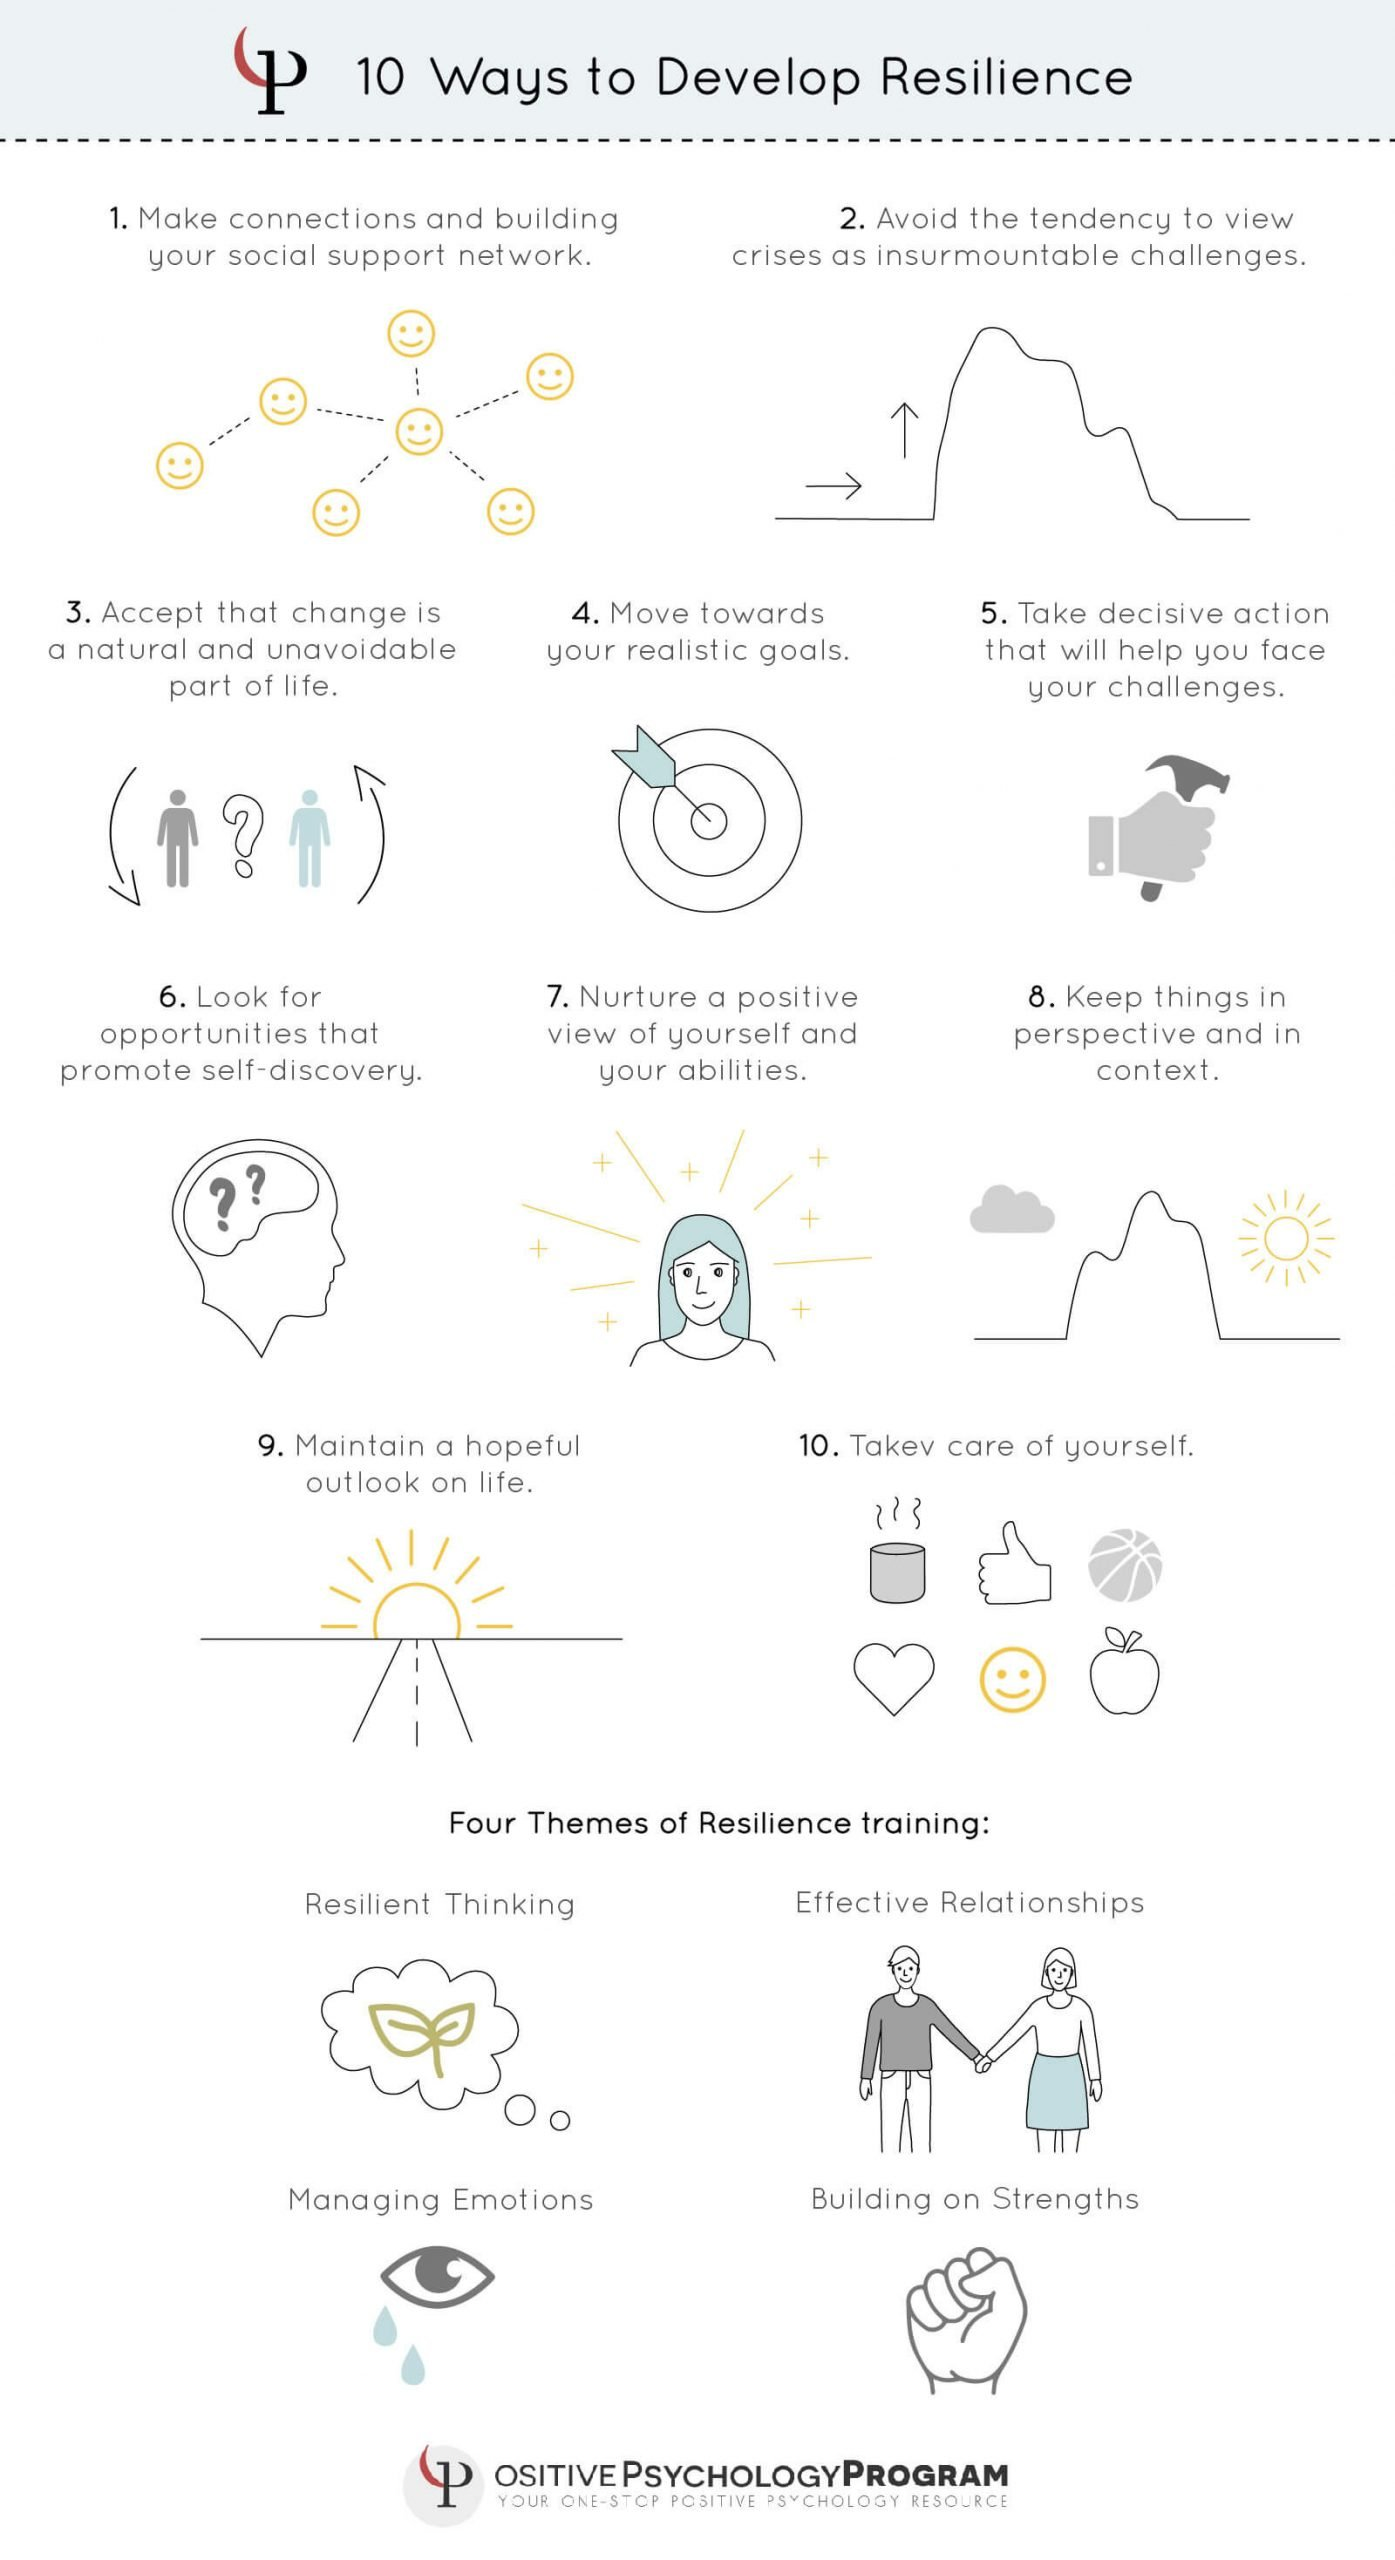 10 ways to develop resilience